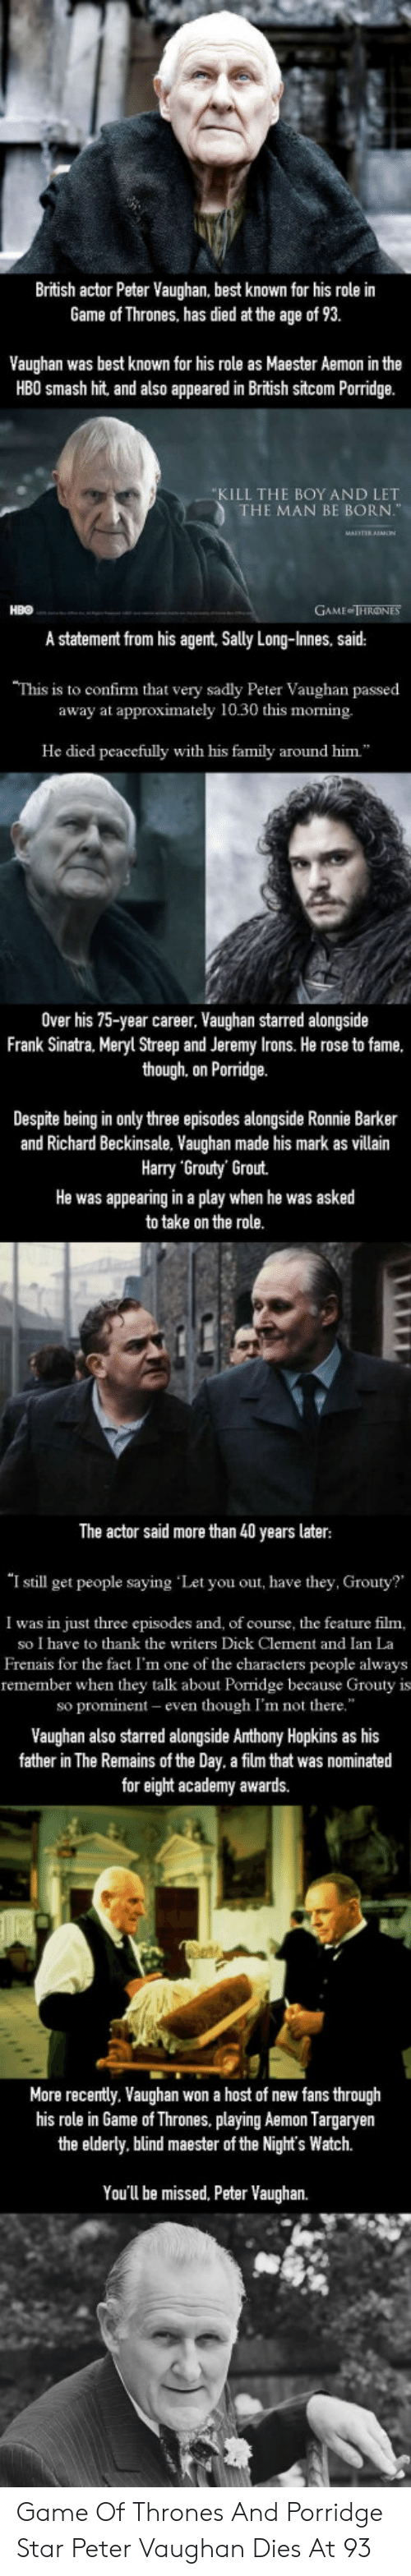 """the nights watch: British actor Peter Vaughan, best known for his role in  Game of Thrones, has died at the age of 93.  Vaughan was best known for his role as Maester Aemon in the  HB0 smash hit, and also appeared in British sitcom Porridge.  KILL THE BOY AND LET  THE MAN BE BORN.""""  HBO  GAME THROONES  A statement from his agent, Sally Long-Innes, said:  This is to confirm that very sadly Peter Vaughan passed  away at approximately 10.30 this morning.  He died peacefully with his family around him  Over his 75-year career, Vaughan starred alongside  Frank Sinatra, Meryl Streep and Jeremy Irons. He rose to fame  though, on Porridge.  Despite being in only three episodes alongside Ronnie Barker  and Richard Beckinsale. Vaughan made his mark as villain  Harry Grouty' Grout.  He was appearing in a play when he was asked  to take on the role.  The actor said more than 40 years later  """"I still get people saying 'Let you out, have they. Grouty?'  I was in just three episodes and, of course, the feature film,  so I have to thank the writers Dick Clement and Ian La  Frenais for the fact I'm one of the characters people always  remember when they talk about Porridge because Grouty is  so promi  even though I'm not there  Vaughan also starred alongside Anthony Hopkins as his  father in The Remains of the Day. a film that was nominated  for eight academy awards.  More recently. Vaughan won a host of new fans through  his role in Game of Thrones, playing Aemon Targaryen  the elderly. blind maester of the Night's Watch.  You'll be missed, Peter Vaughan. Game Of Thrones And Porridge Star Peter Vaughan Dies At 93"""